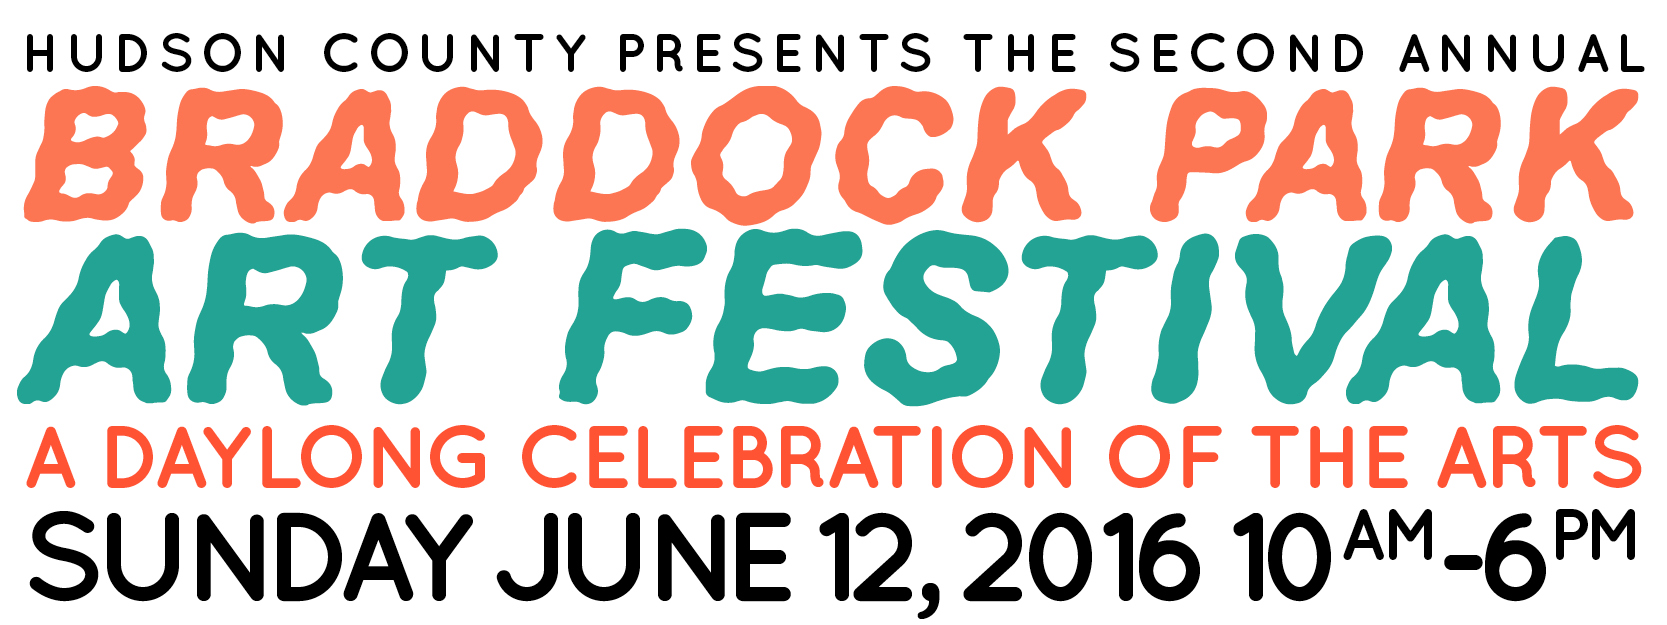 We are very excited to announce this year's Braddock Park Art Festival hosted on Sunday June 12th from 10am - 6pm.    We have a wide range of activities for the entire community to enjoy. You will take part in Artist Demos and Community Projects lead by Guttenberg Arts residents and staff, and find Artist Installations brought on location by select established artists from our network.Our Lakeside Artist Market will consist of local artists and galleries.Food Trucks selected from the surrounding area will be located along Riverside Drive.